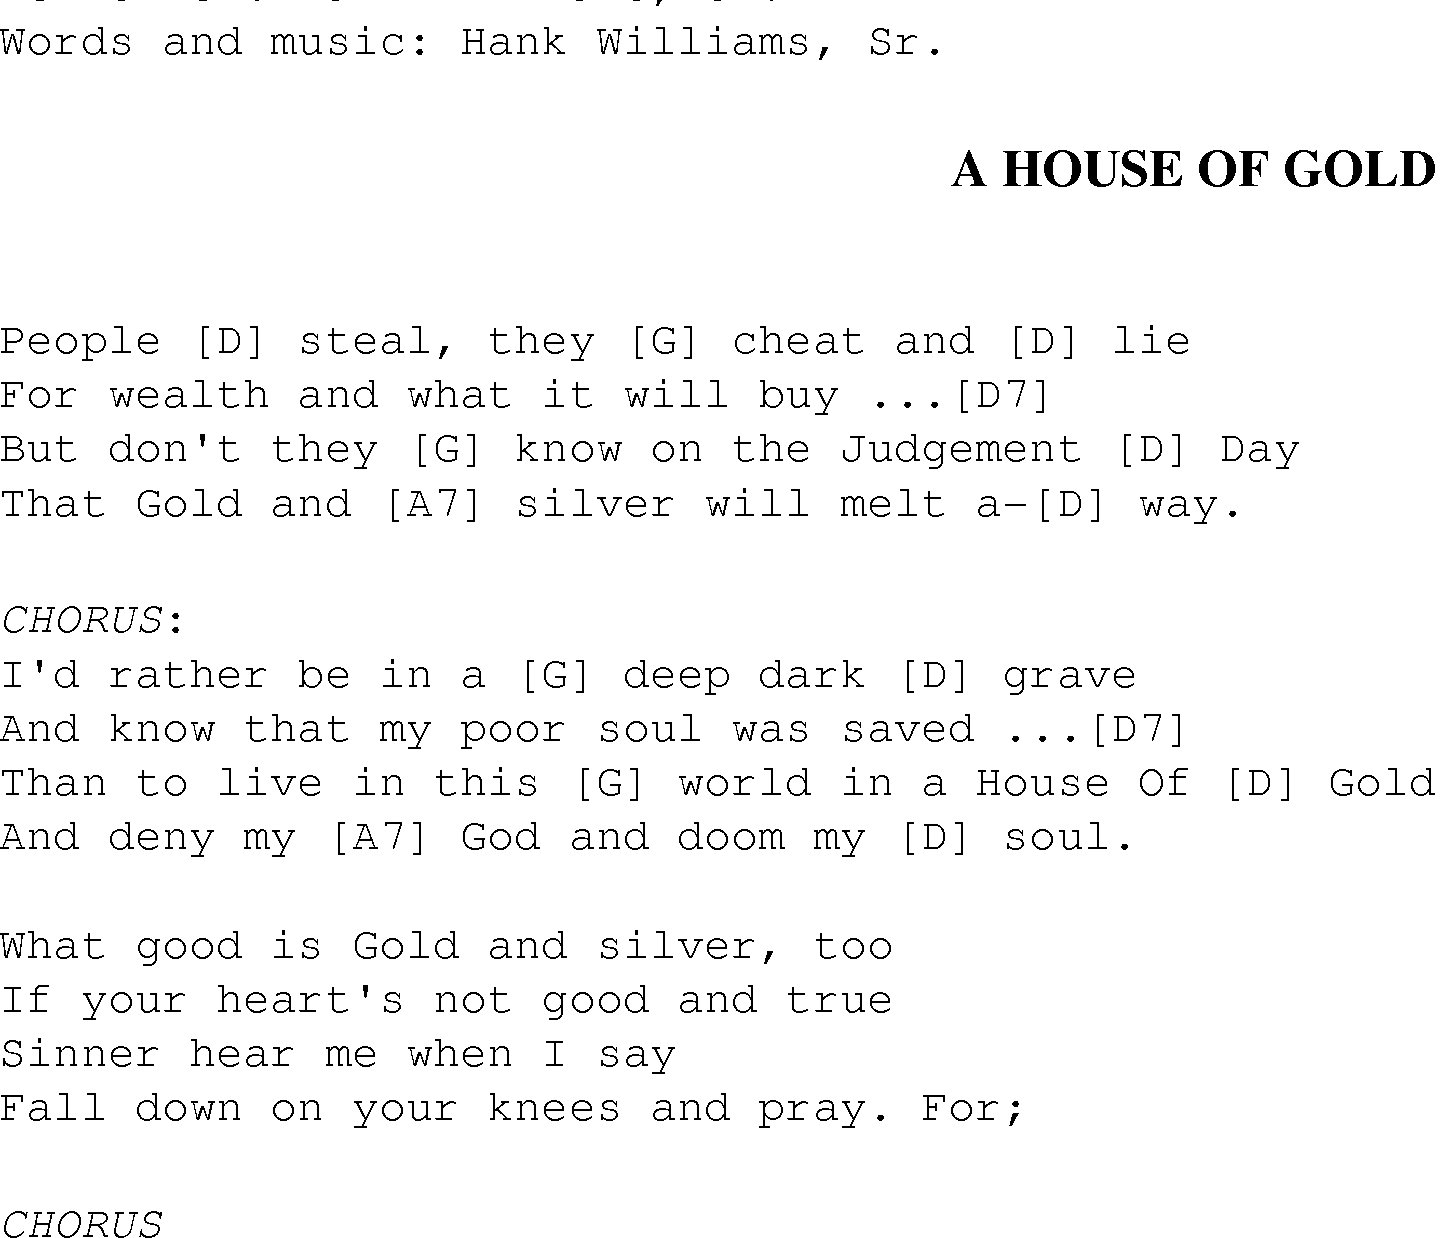 a house of gold christian gospel song lyrics and chords. Black Bedroom Furniture Sets. Home Design Ideas